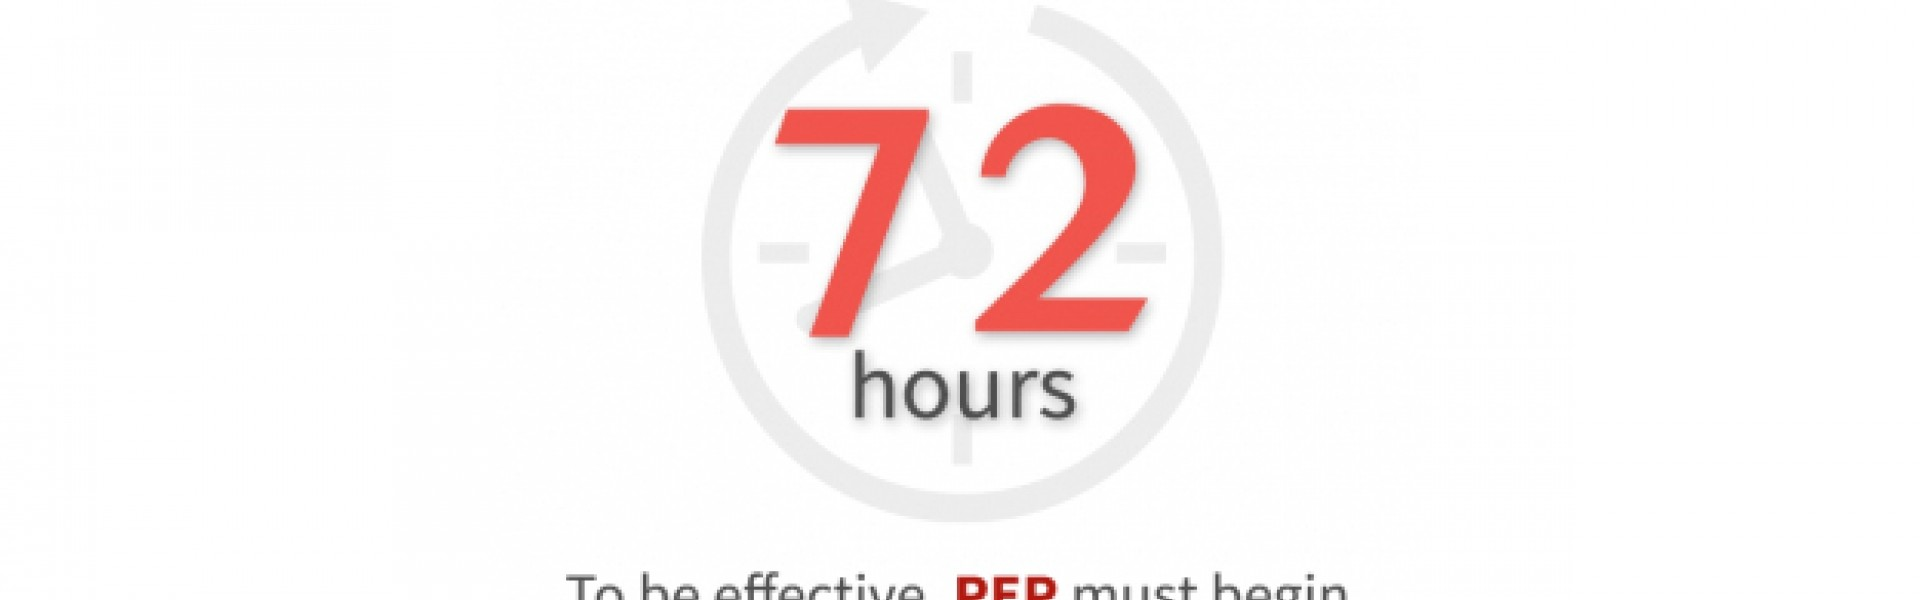 HIV Post-Exposure Prophylaxis (PEP) - 72 Hours